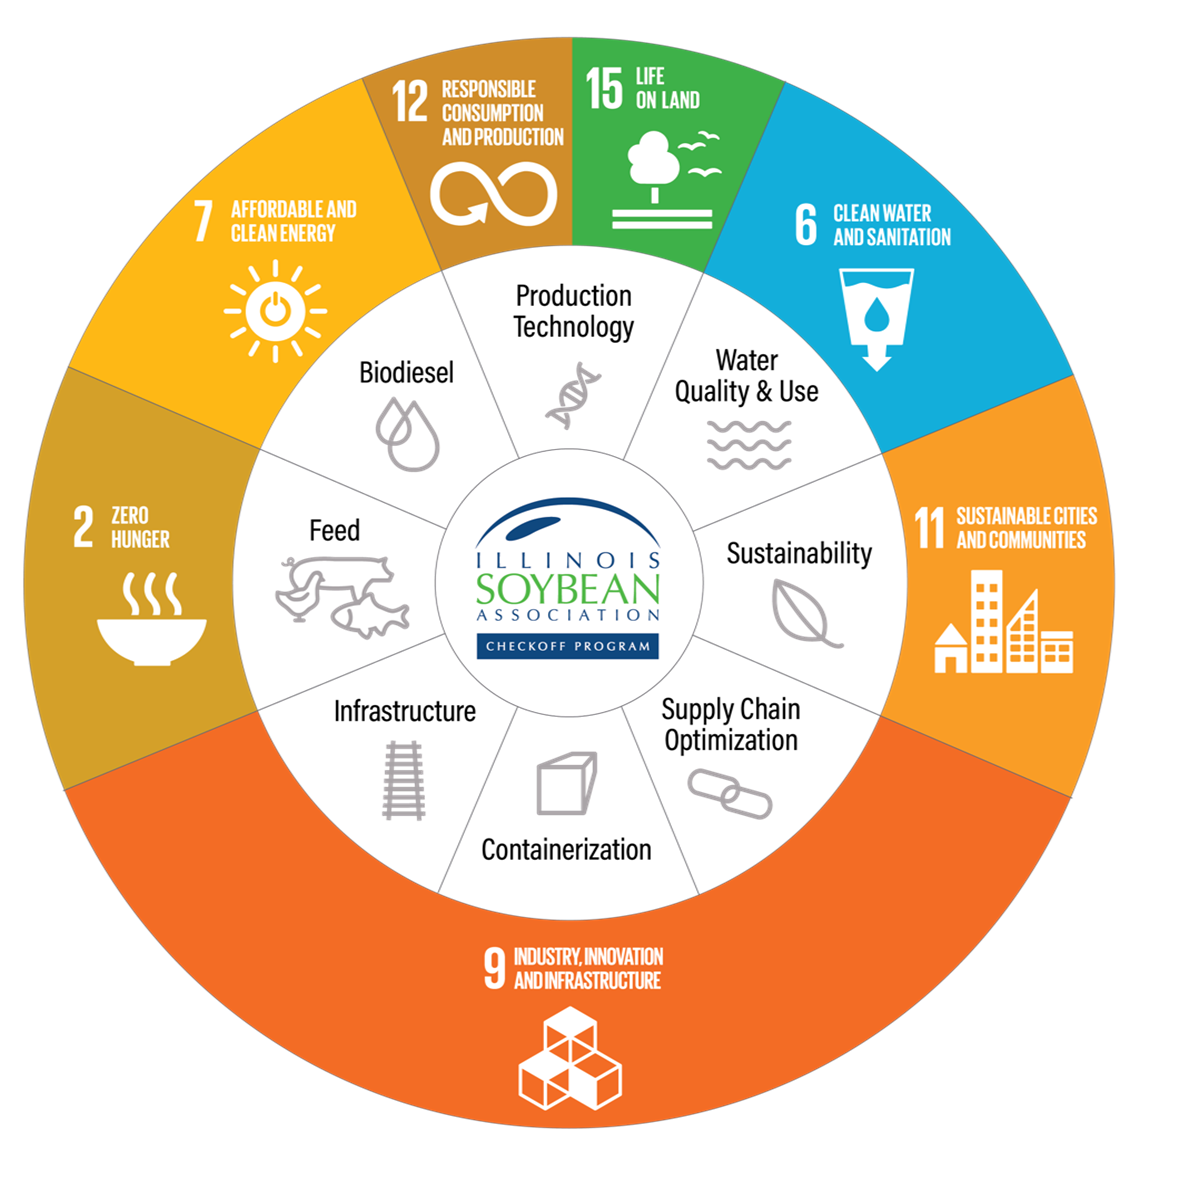 UN Sustainable Development Goals.